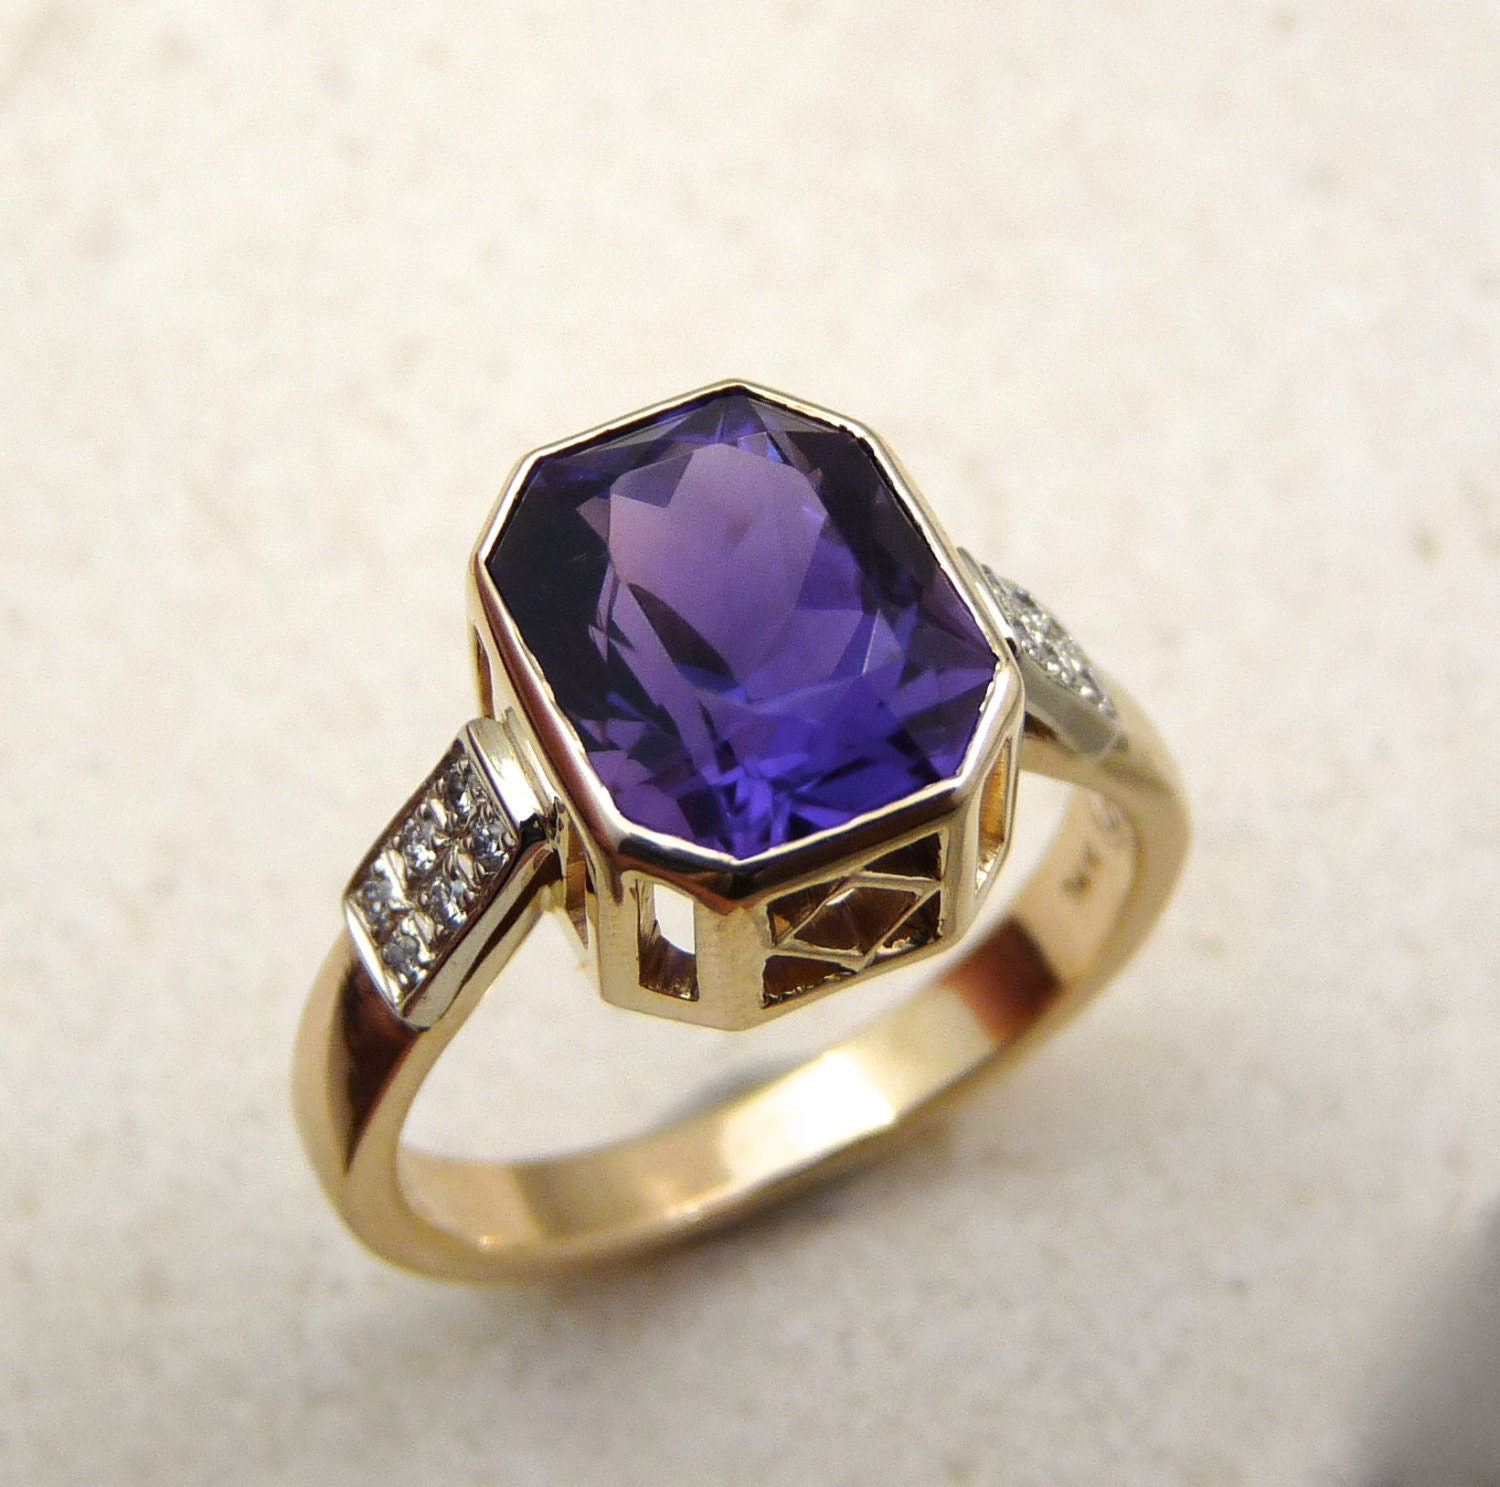 size rings silver ana amethyst by ring handcrafted purple sterling co products